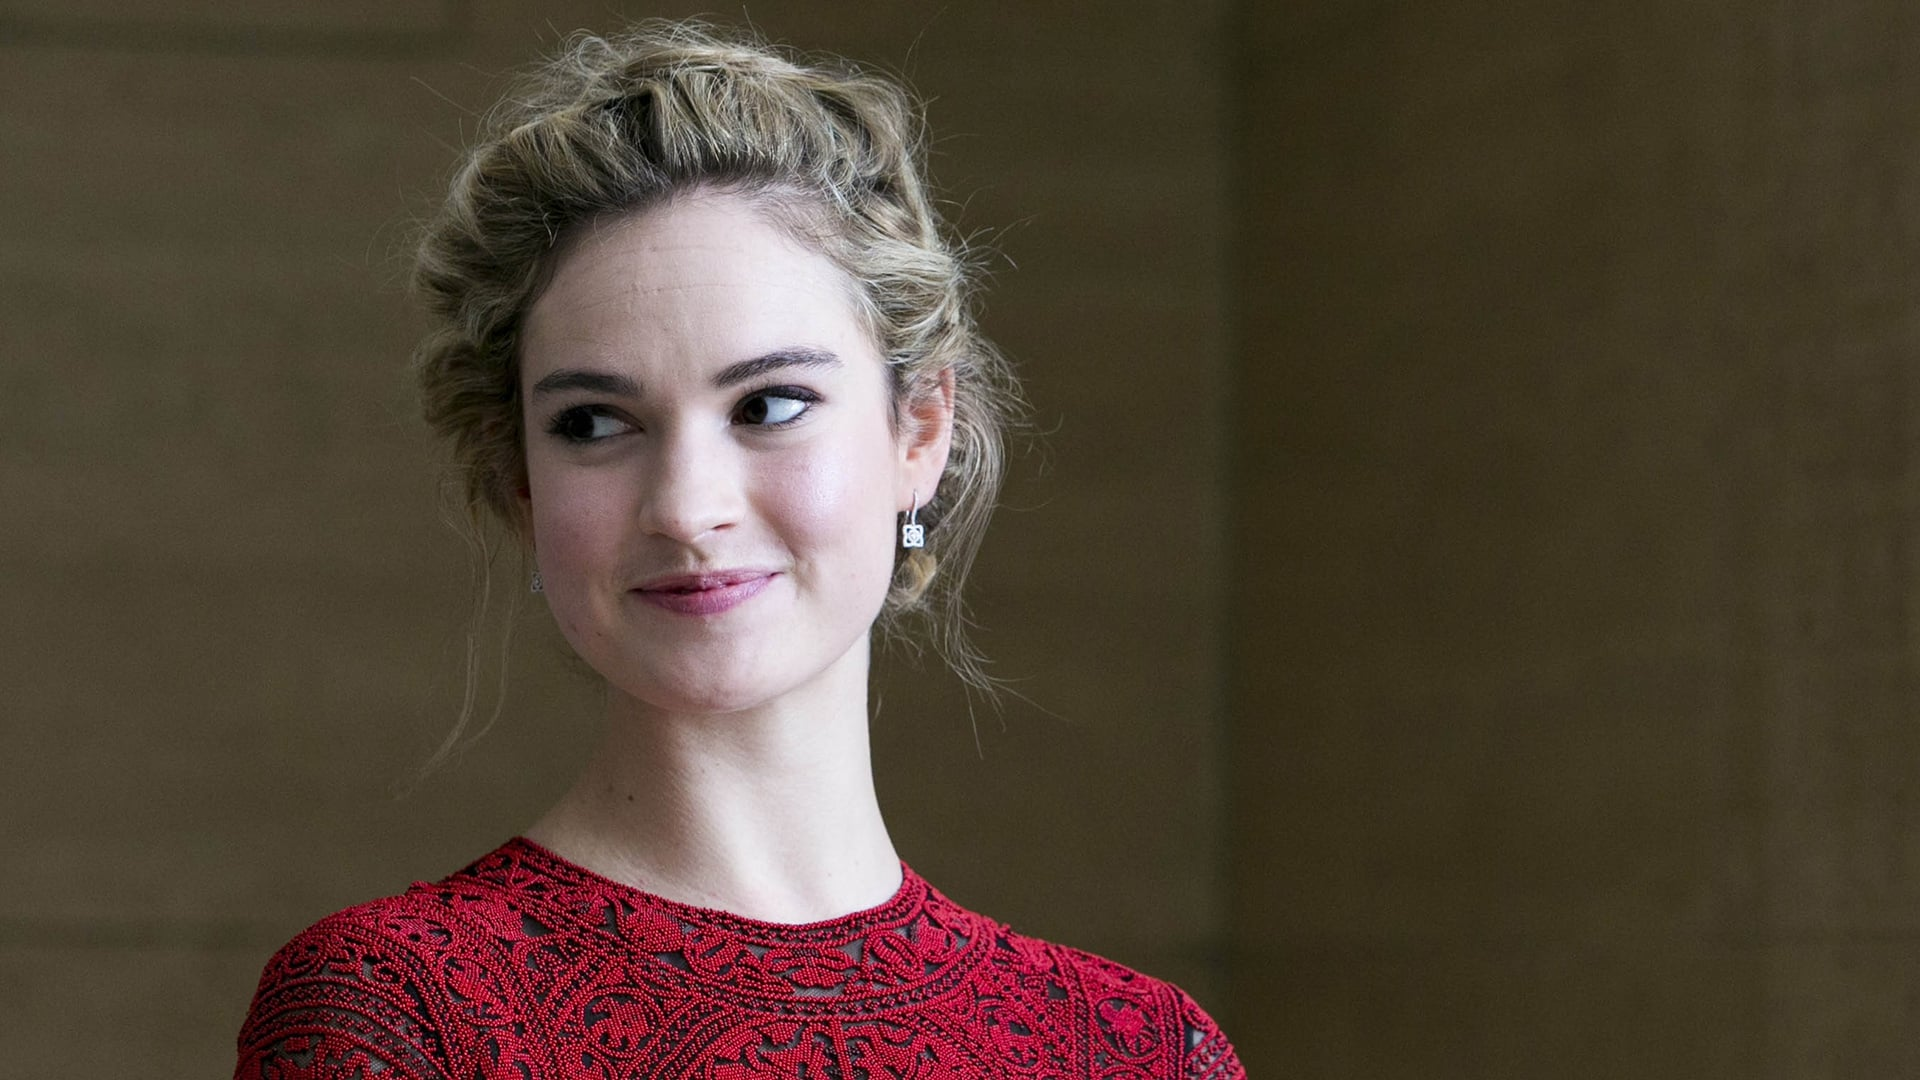 New Lily James 2016 wallpaper